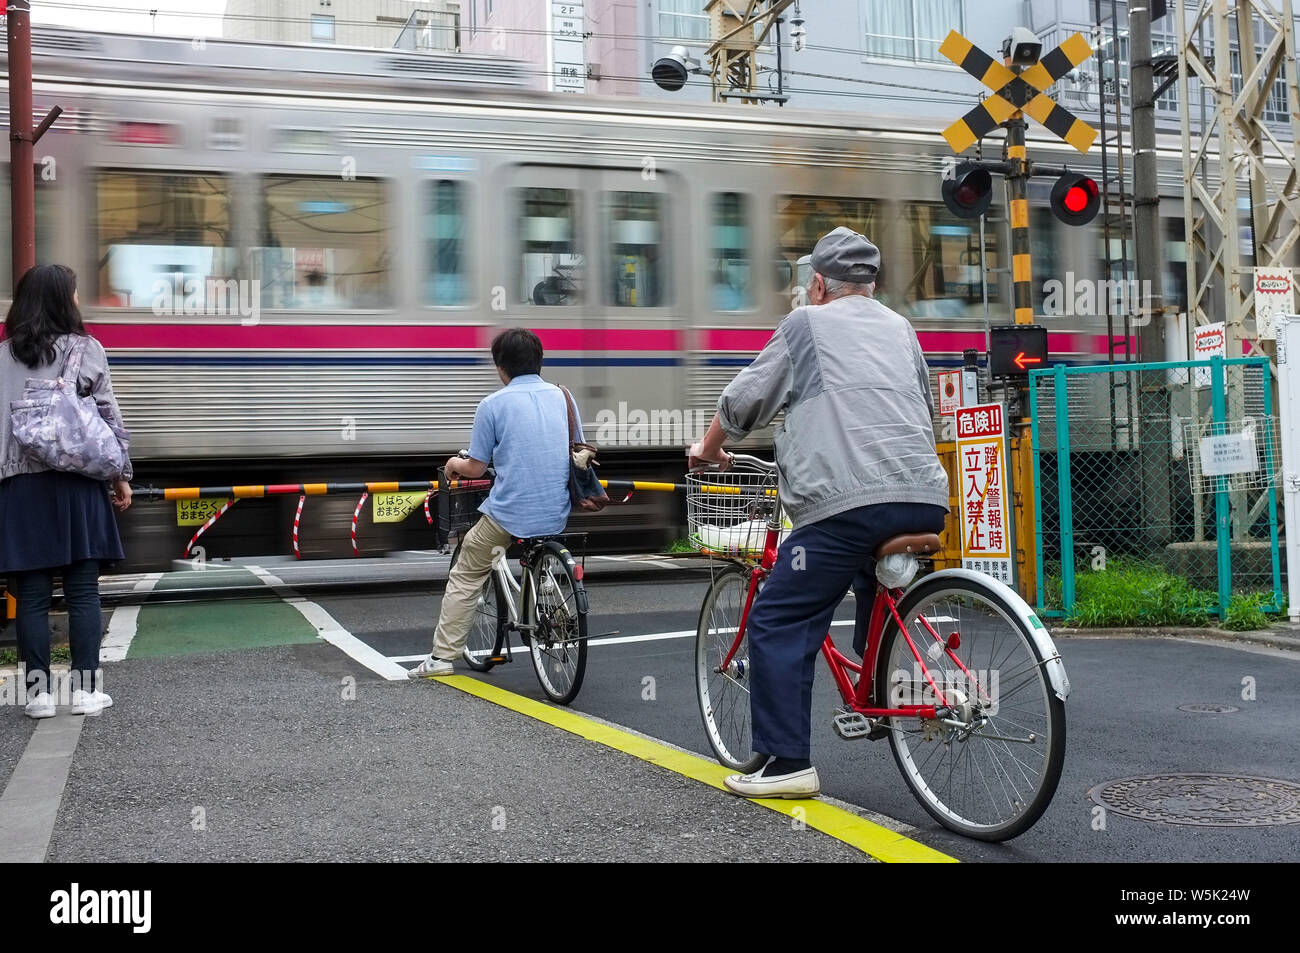 people-on-bicycles-and-pedestrian-stoppe